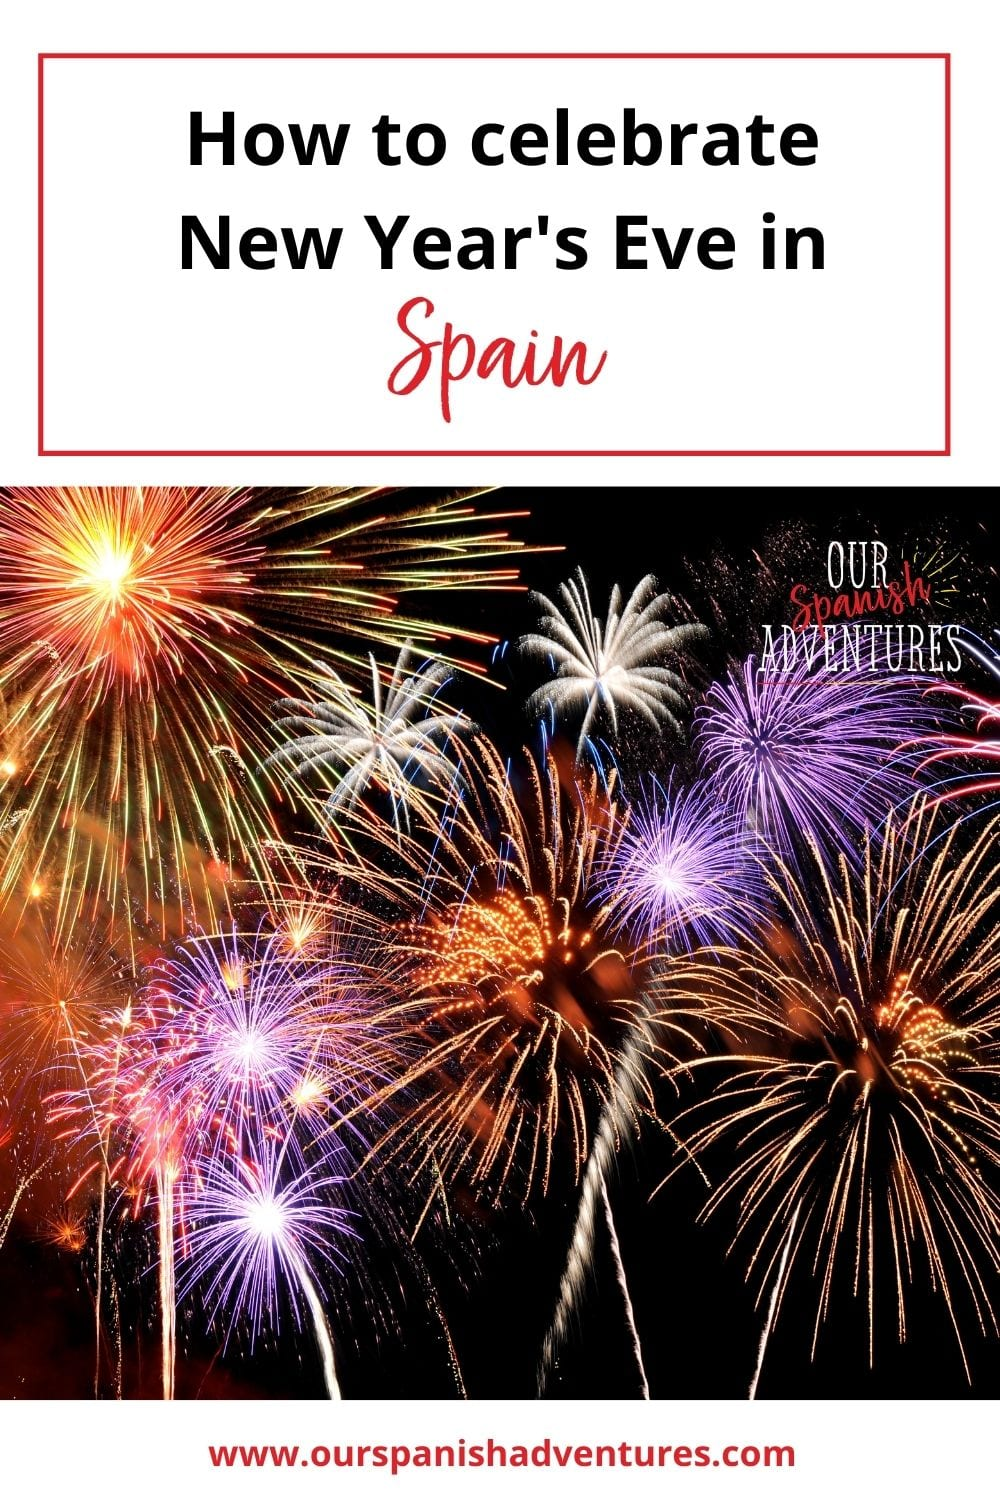 How to celebrate New Year's Eve in Spain | Our Spanish Adventures